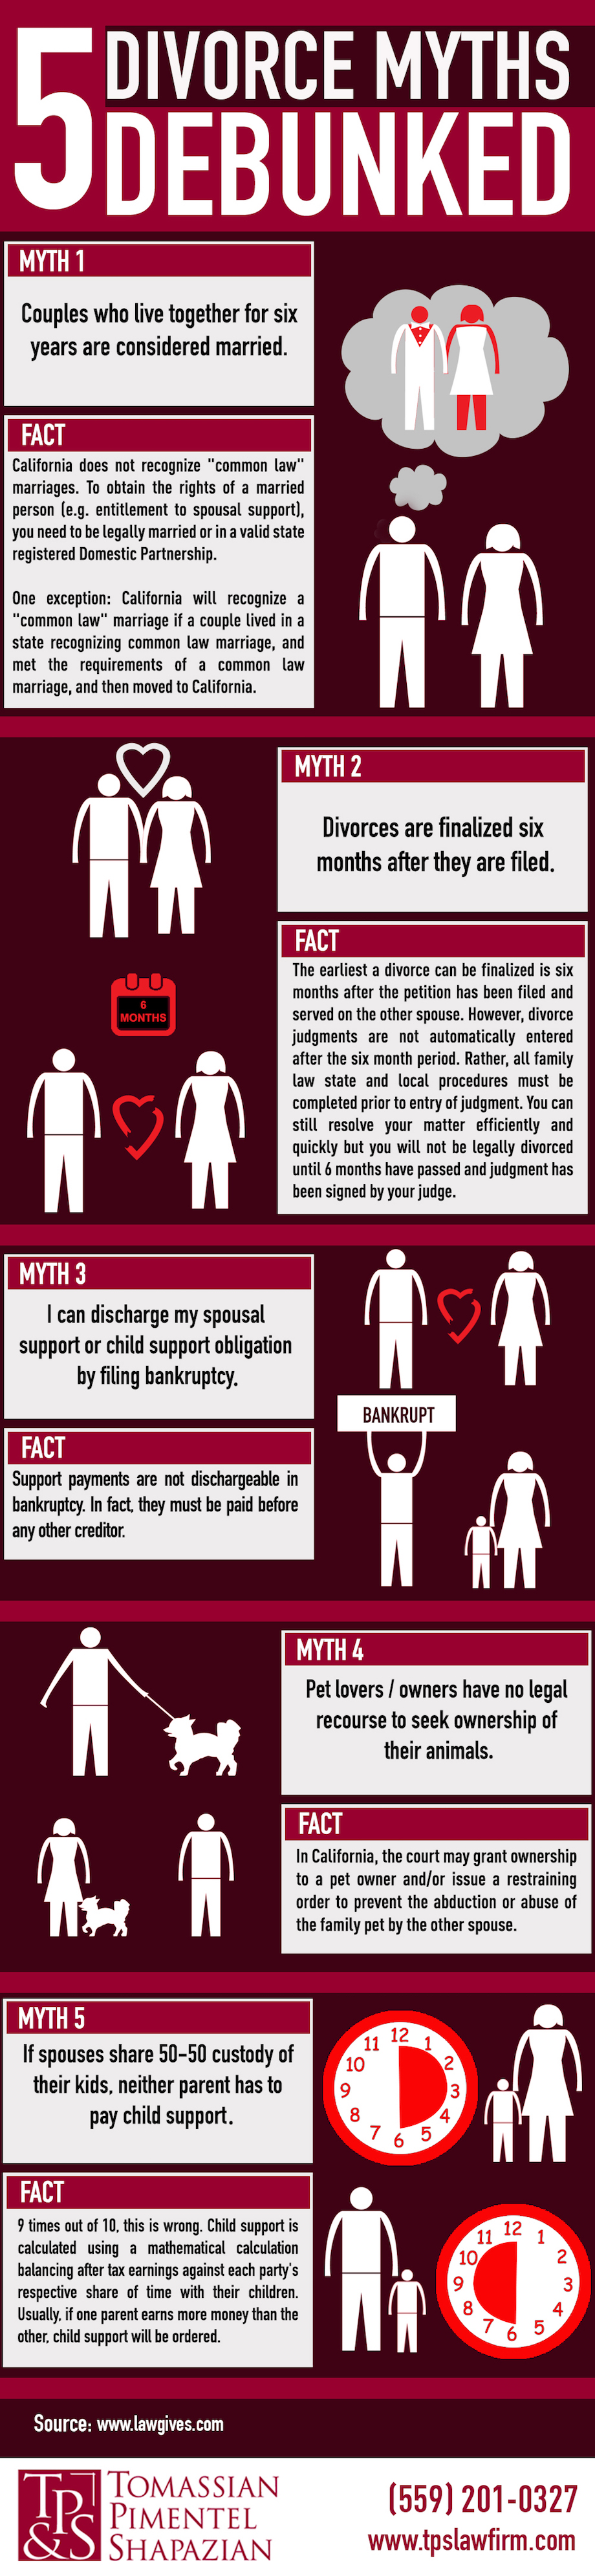 5 divorce myths debunked